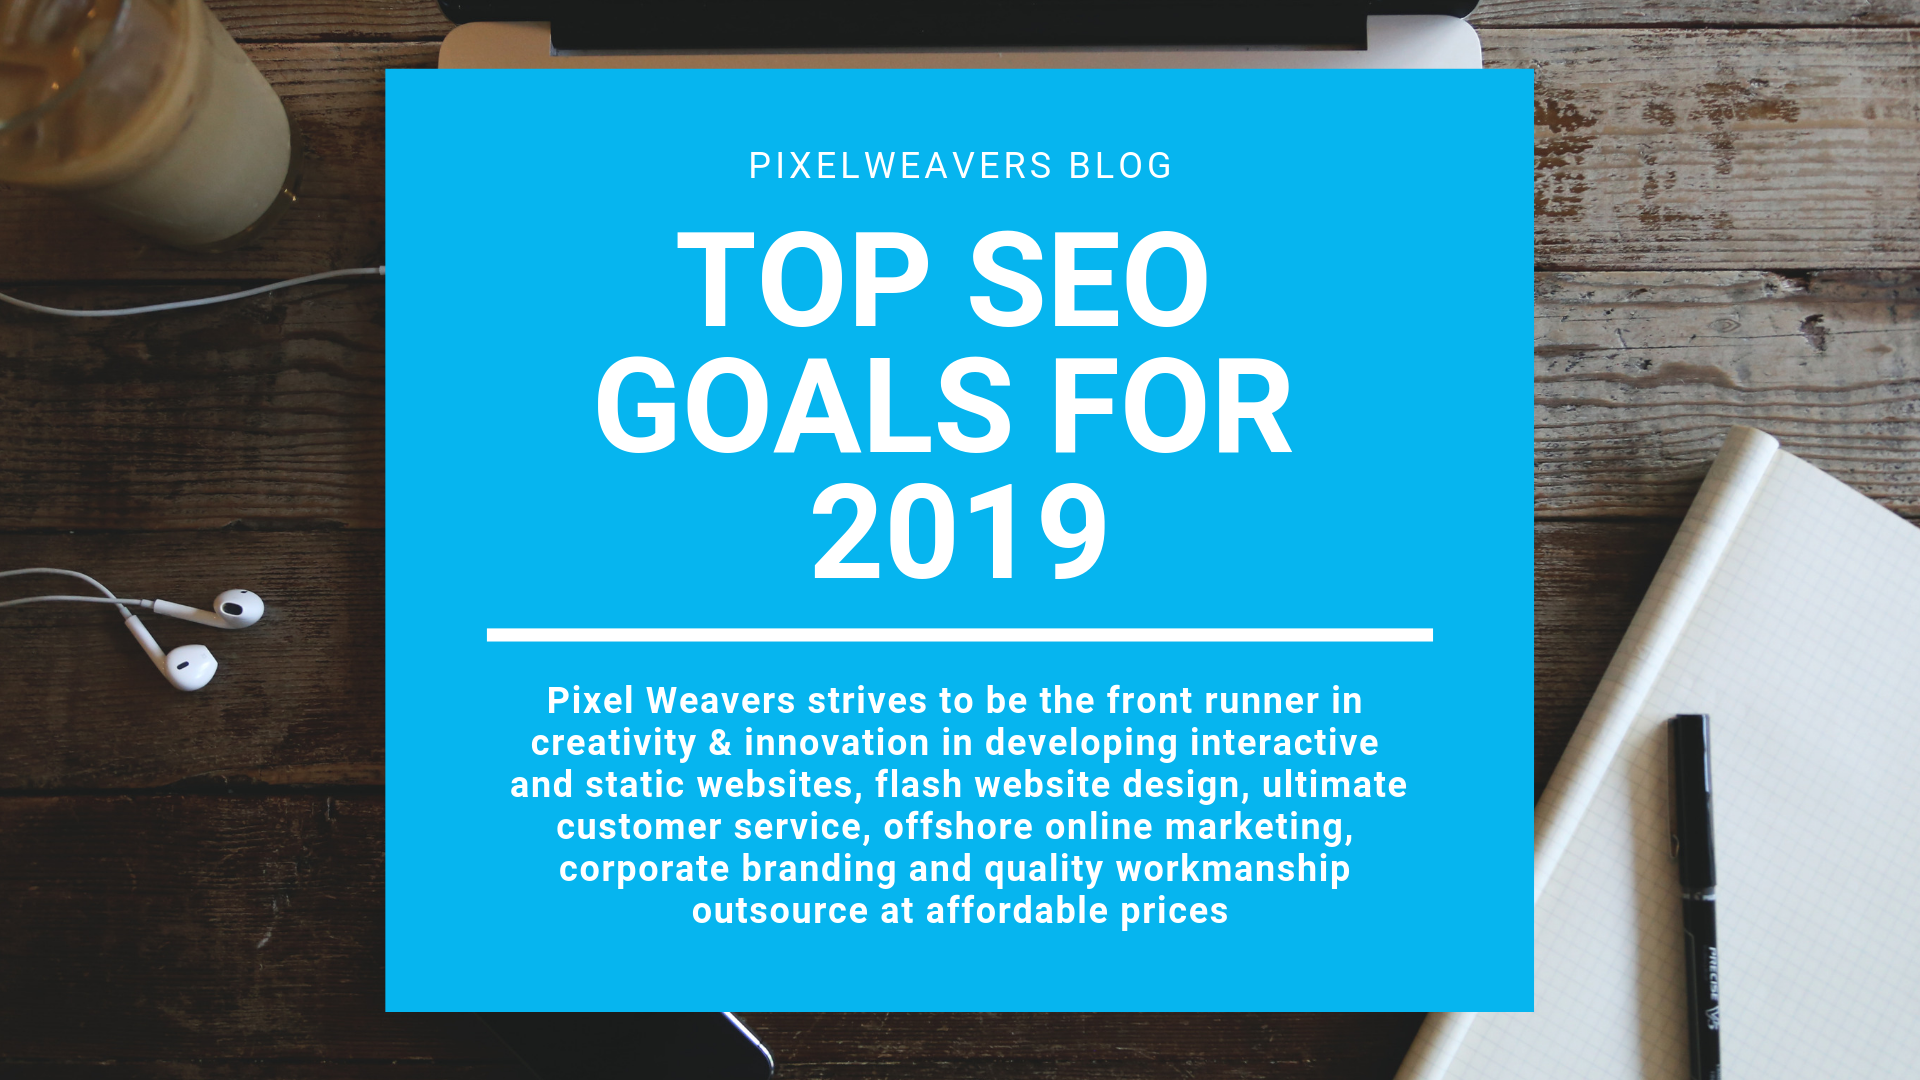 Top SEO Goals for 2019